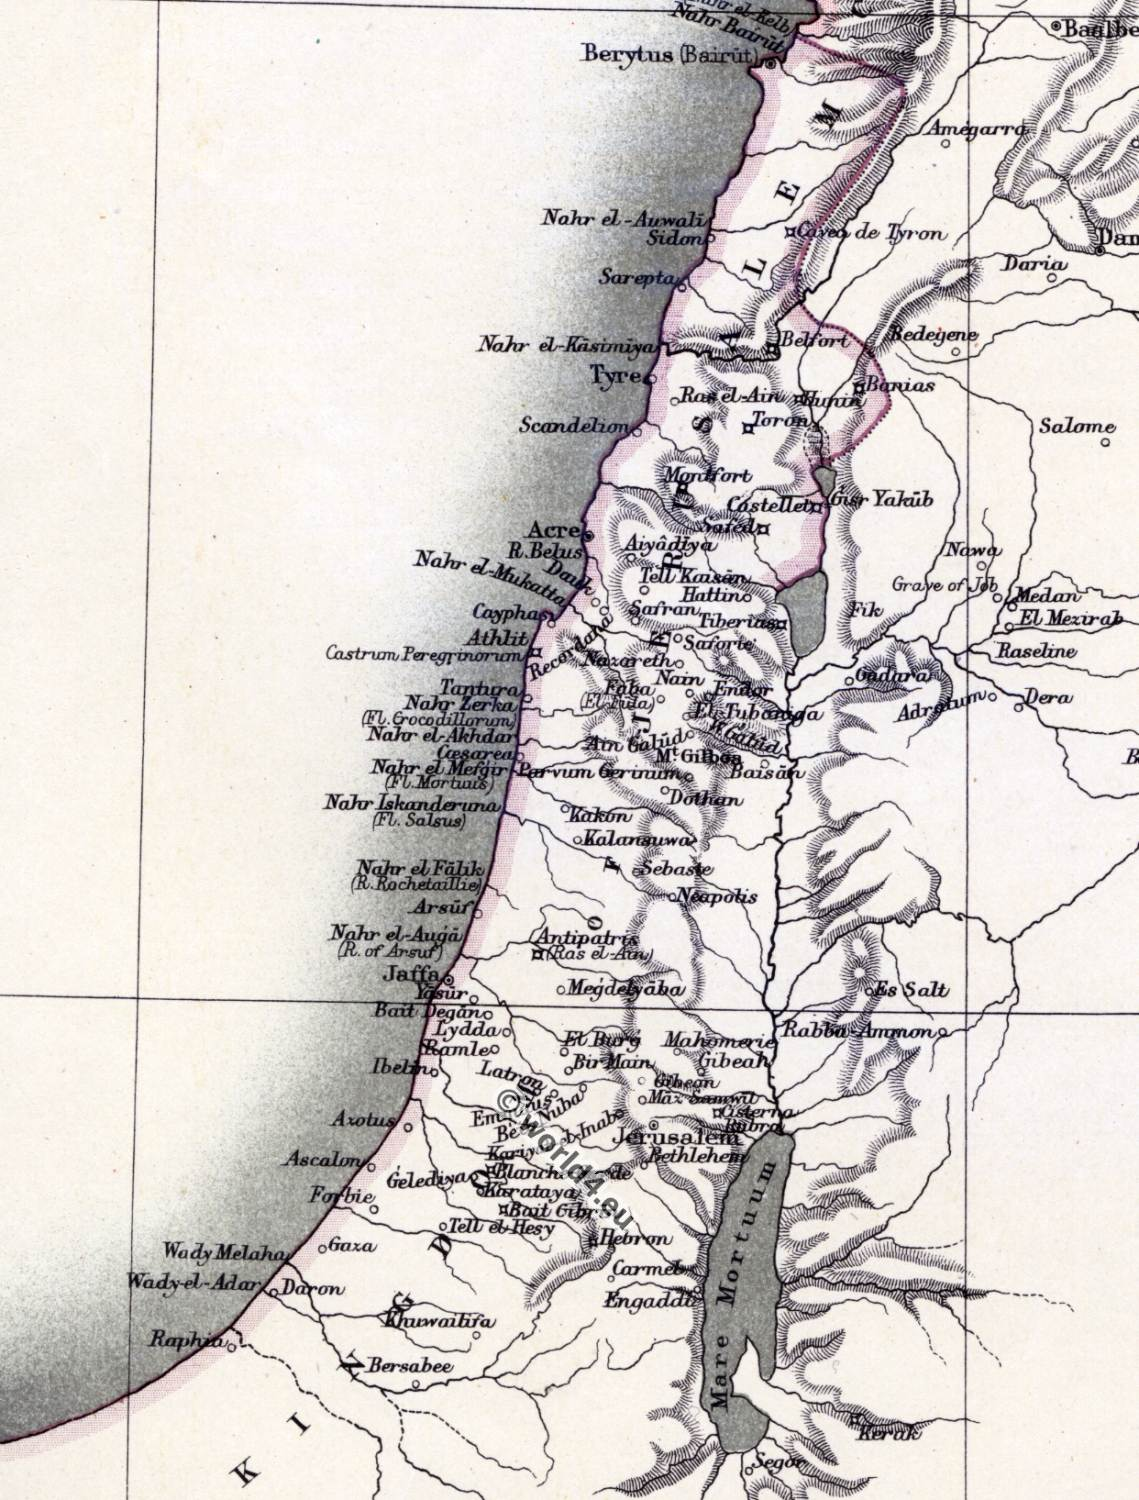 The prinlity of Antioch. The crusades. Map of Syria.   World4 on beirut on map, islam on map, constantinople on map, damascus on map, rome on map, medina on map, london on map, israel map, aleppo on map, baghdad on map, amman on map, cairo on map, golan heights on map, alexandria on map, mecca on map, middle east on map, kabul on map, juba on map, gaza on map, tel aviv on map,